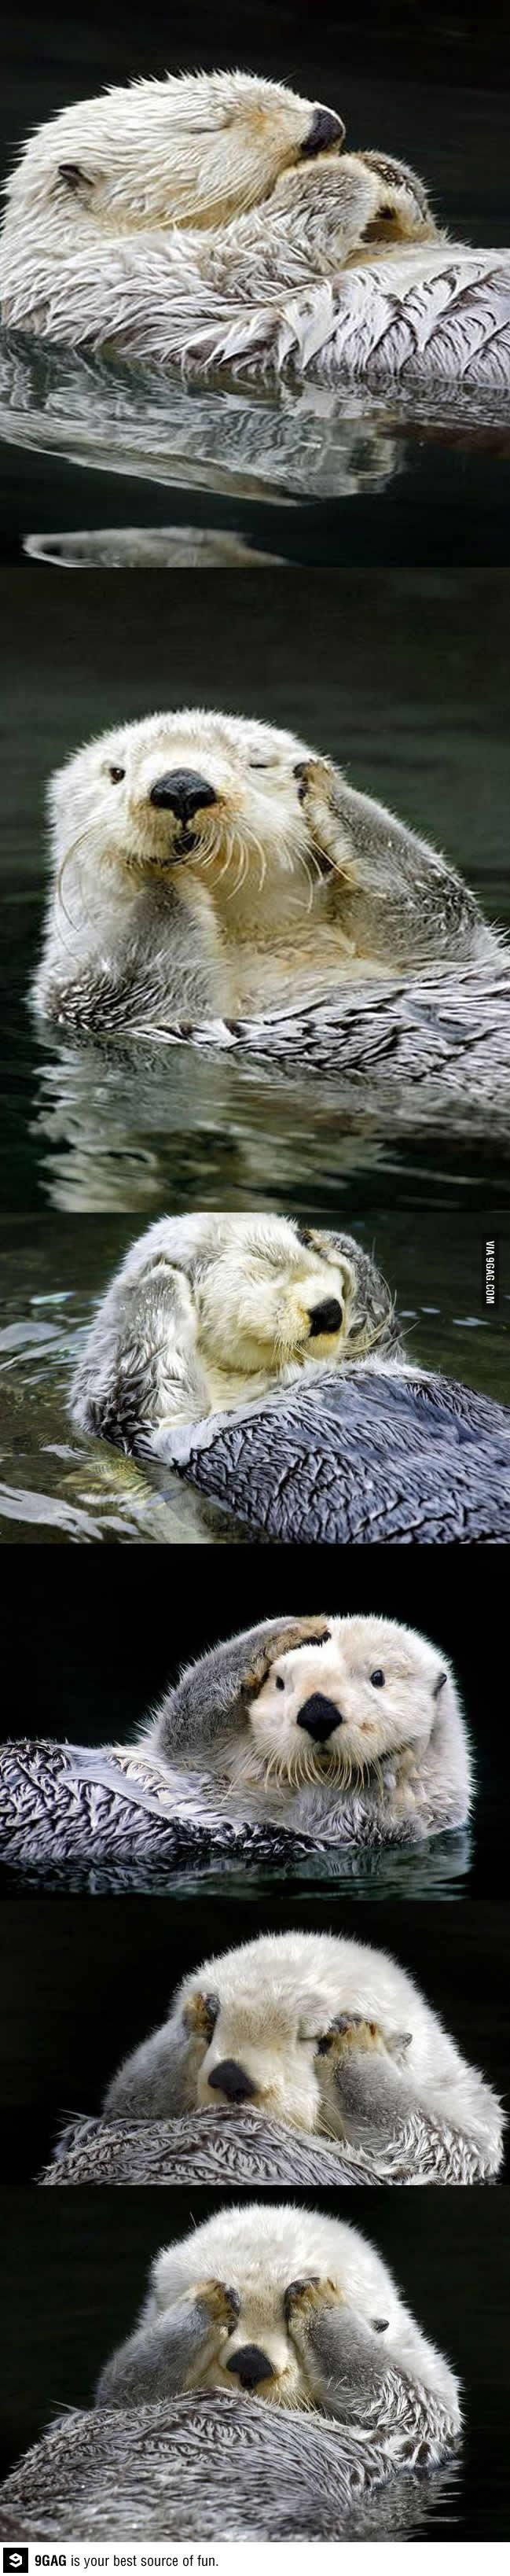 The most photogenic otter ever